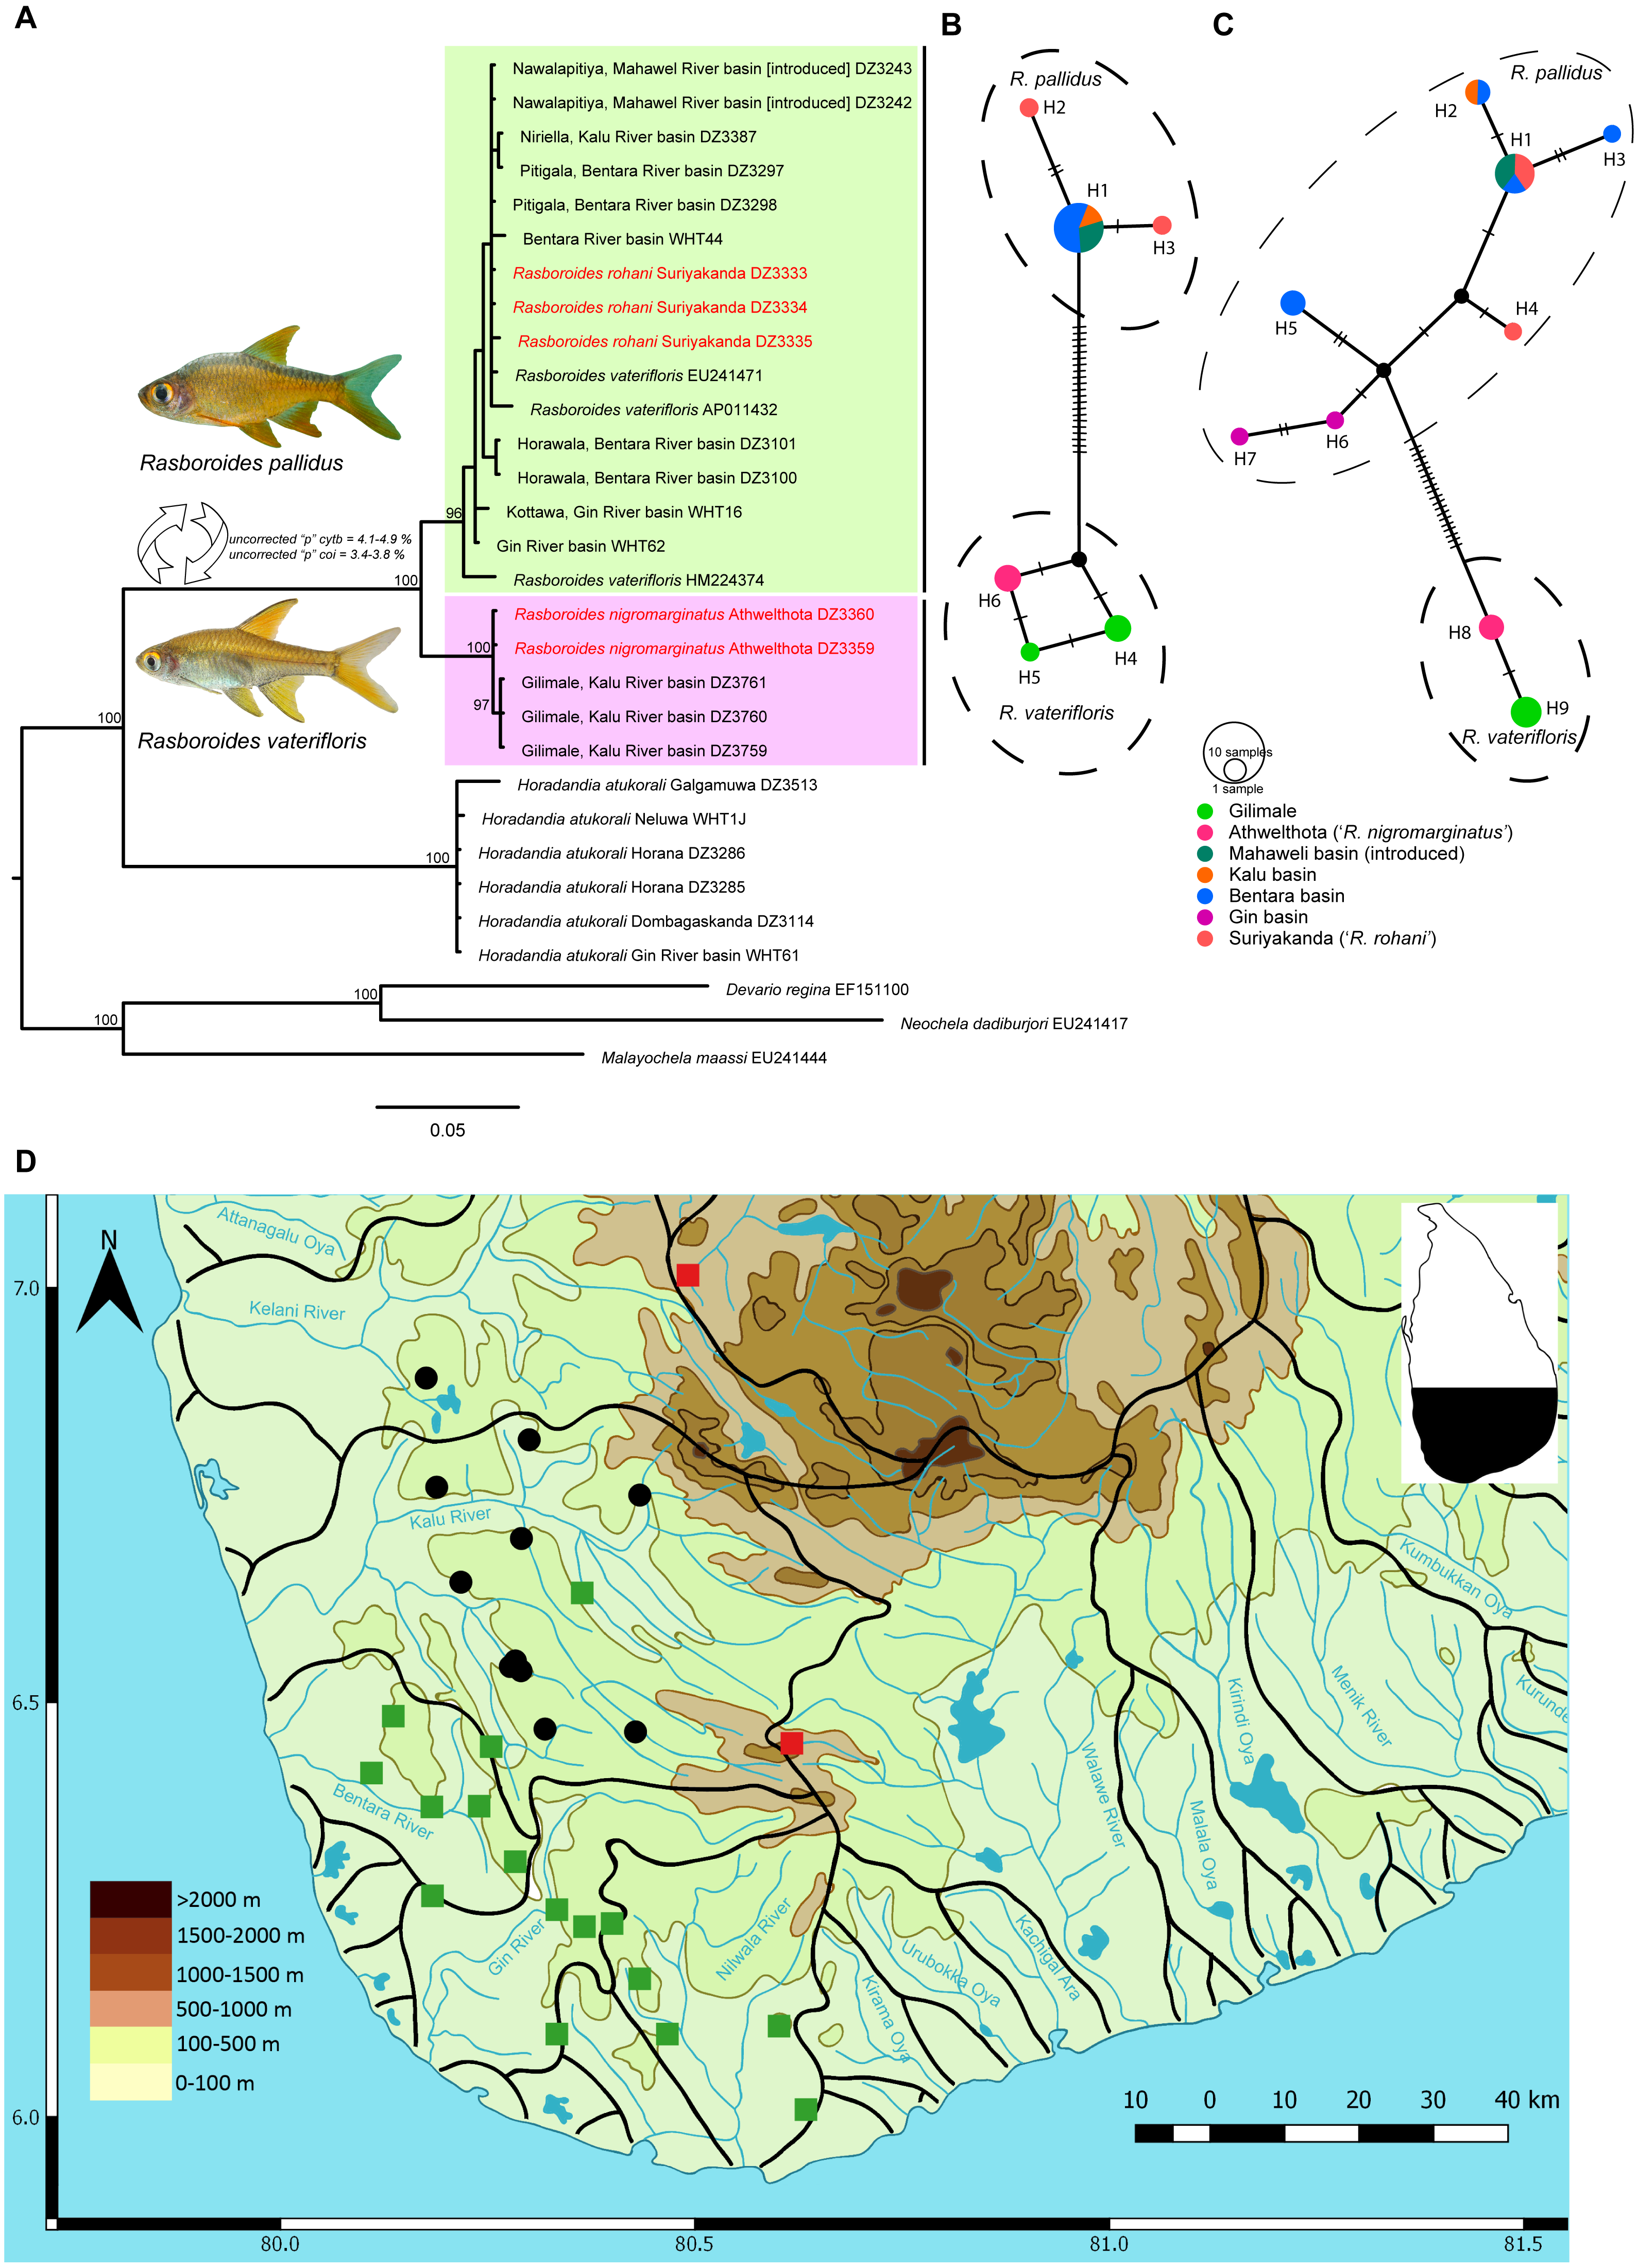 Undocumented translocations spawn taxonomic inflation in Sri